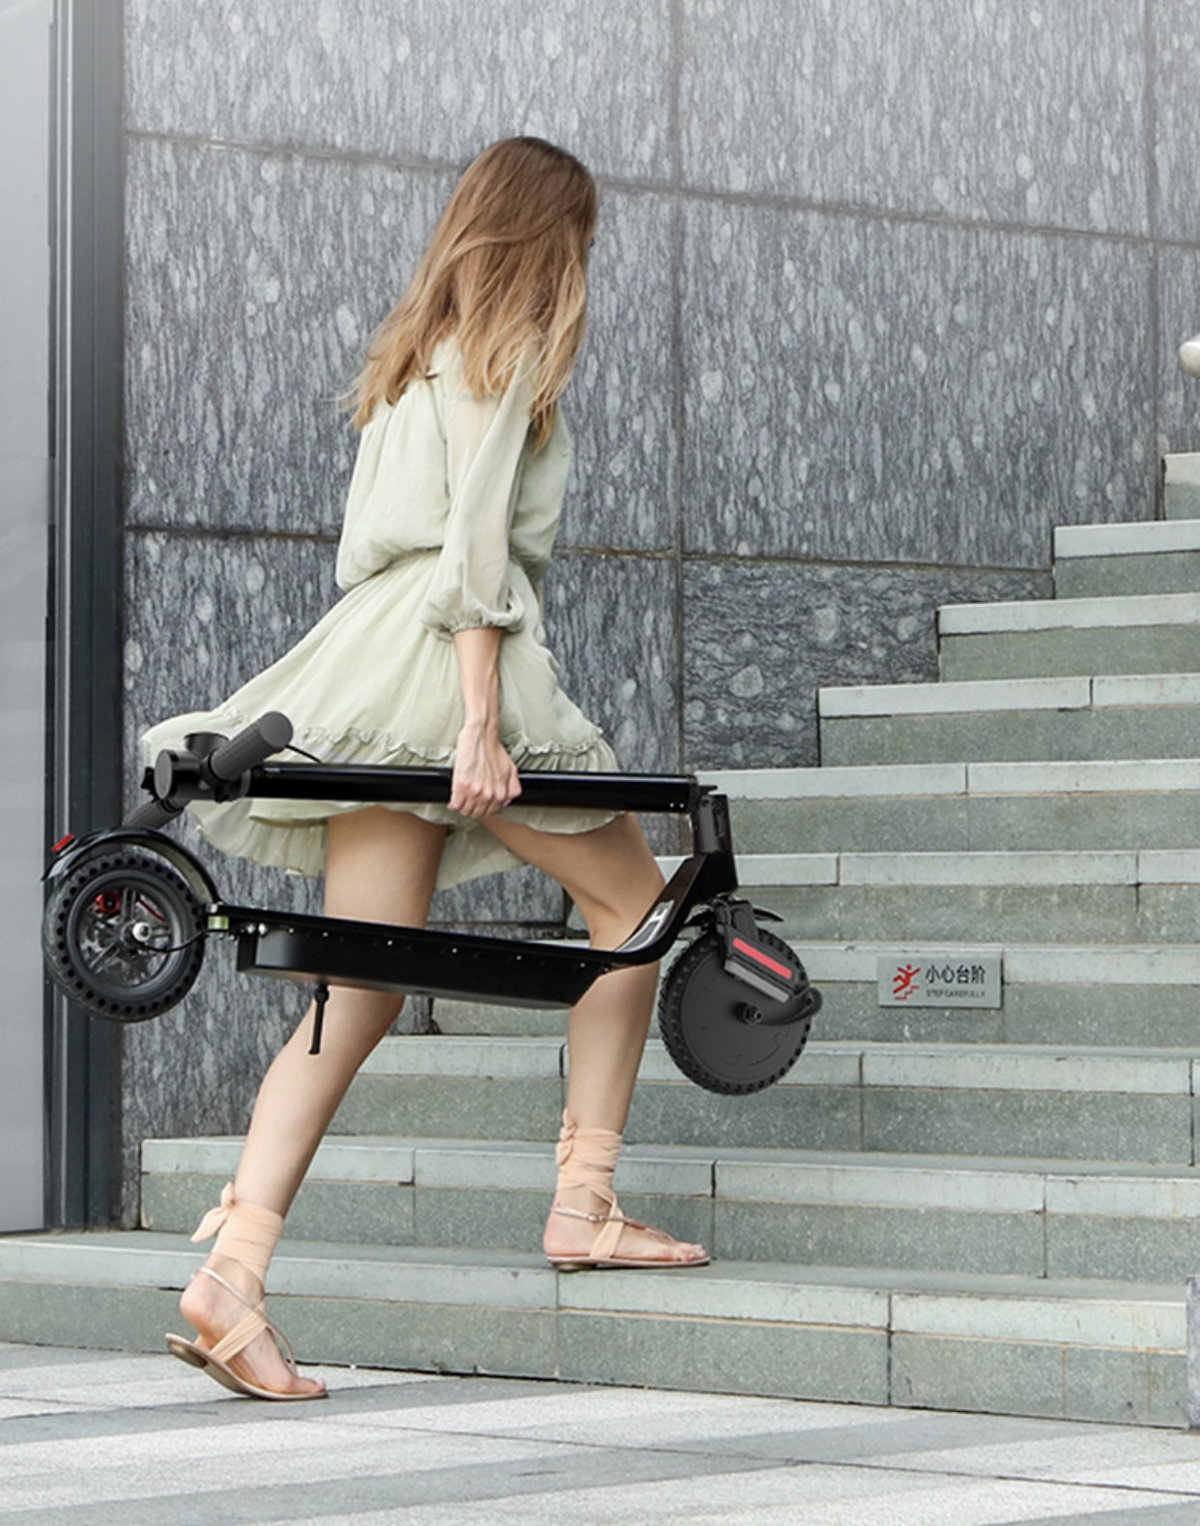 Lady walking upstairs on Scoot E-4